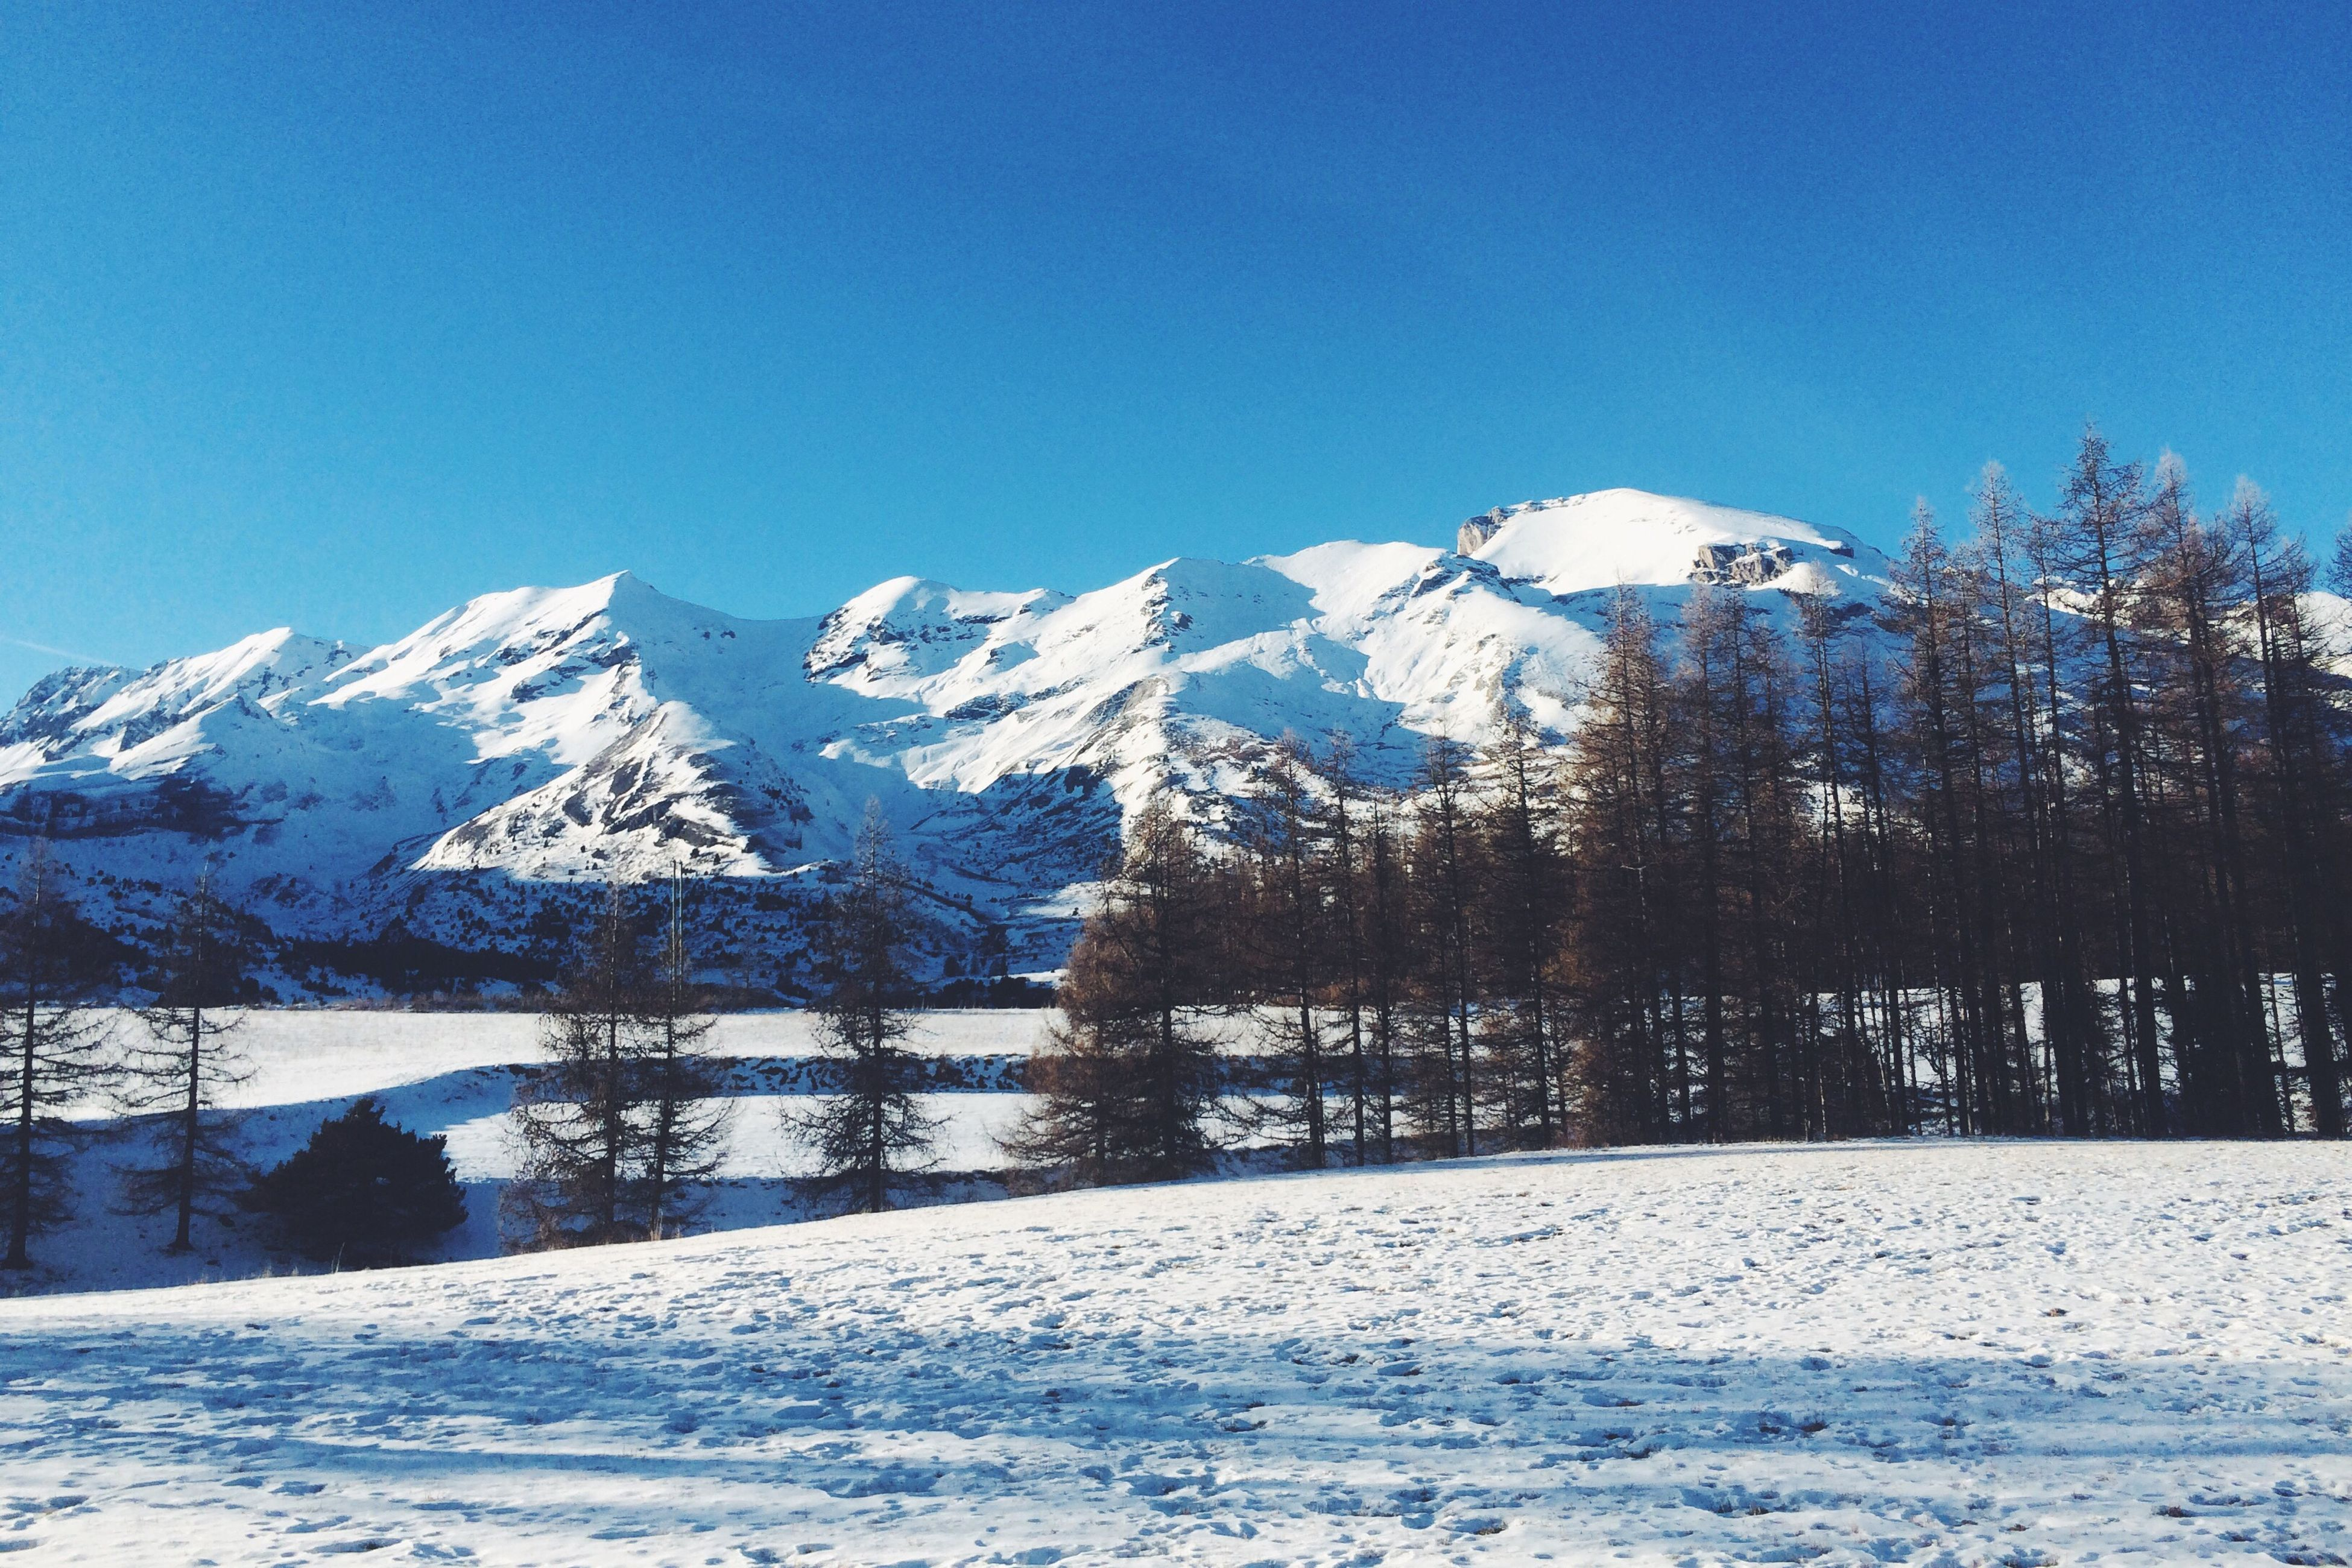 snow, cold temperature, winter, season, weather, mountain, tranquil scene, snowcapped mountain, scenics, mountain range, clear sky, beauty in nature, tree, blue, nature, tranquility, non-urban scene, physical geography, day, outdoors, majestic, deep snow, mountain peak, geology, remote, no people, rocky mountains